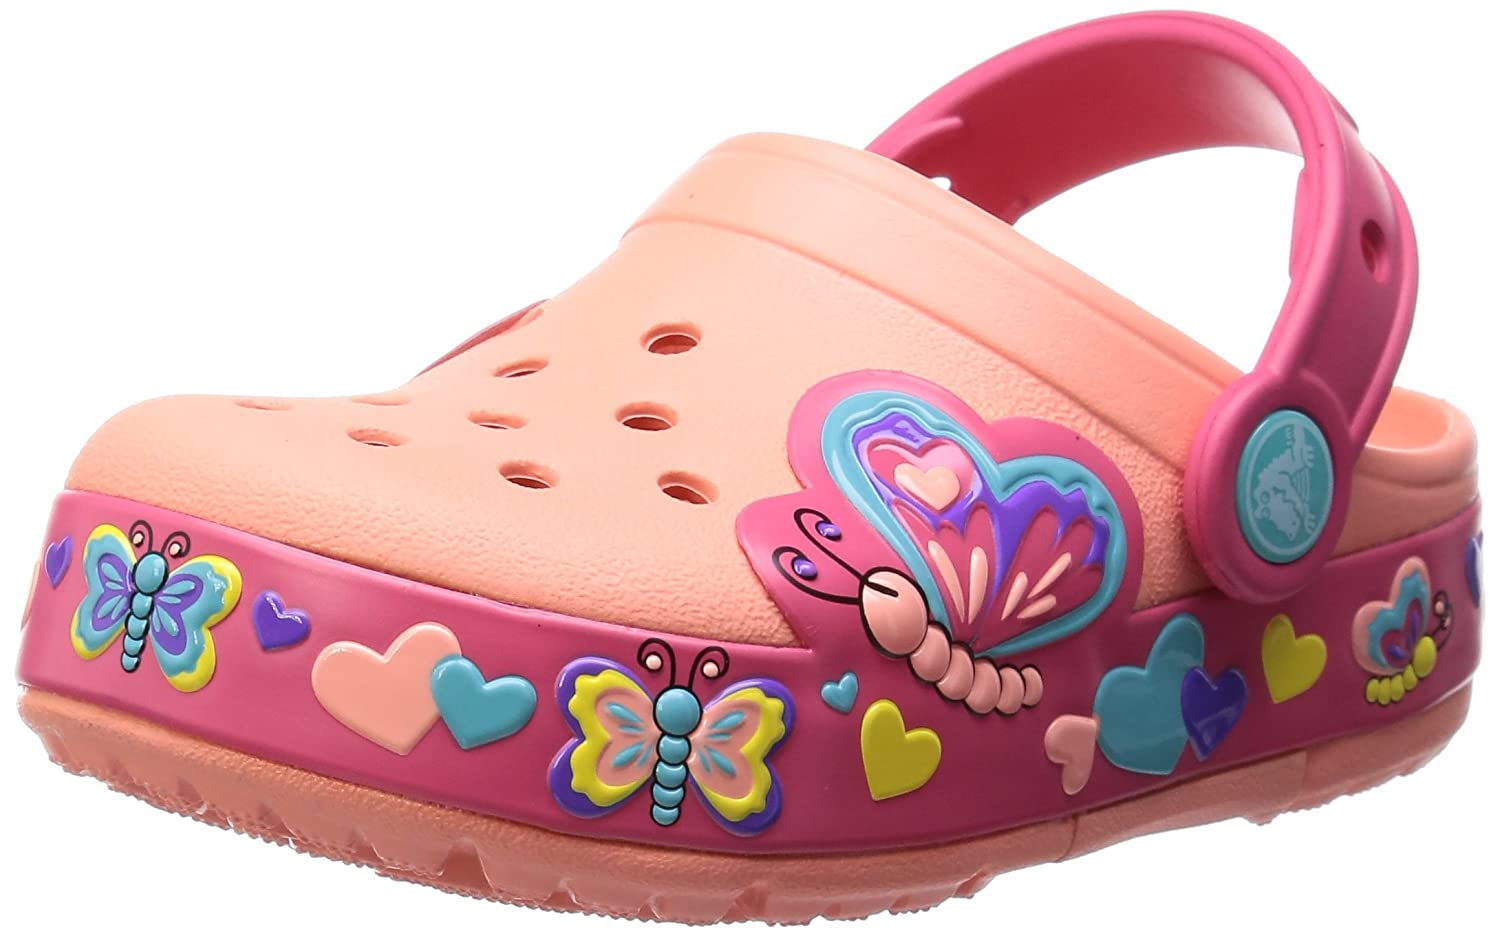 7f16bb3fe9e9 Crocs Girl s CC Dora Butterfly Melon Sunshine Clogs - 12  Buy Online at Low  Prices in India - Amazon.in